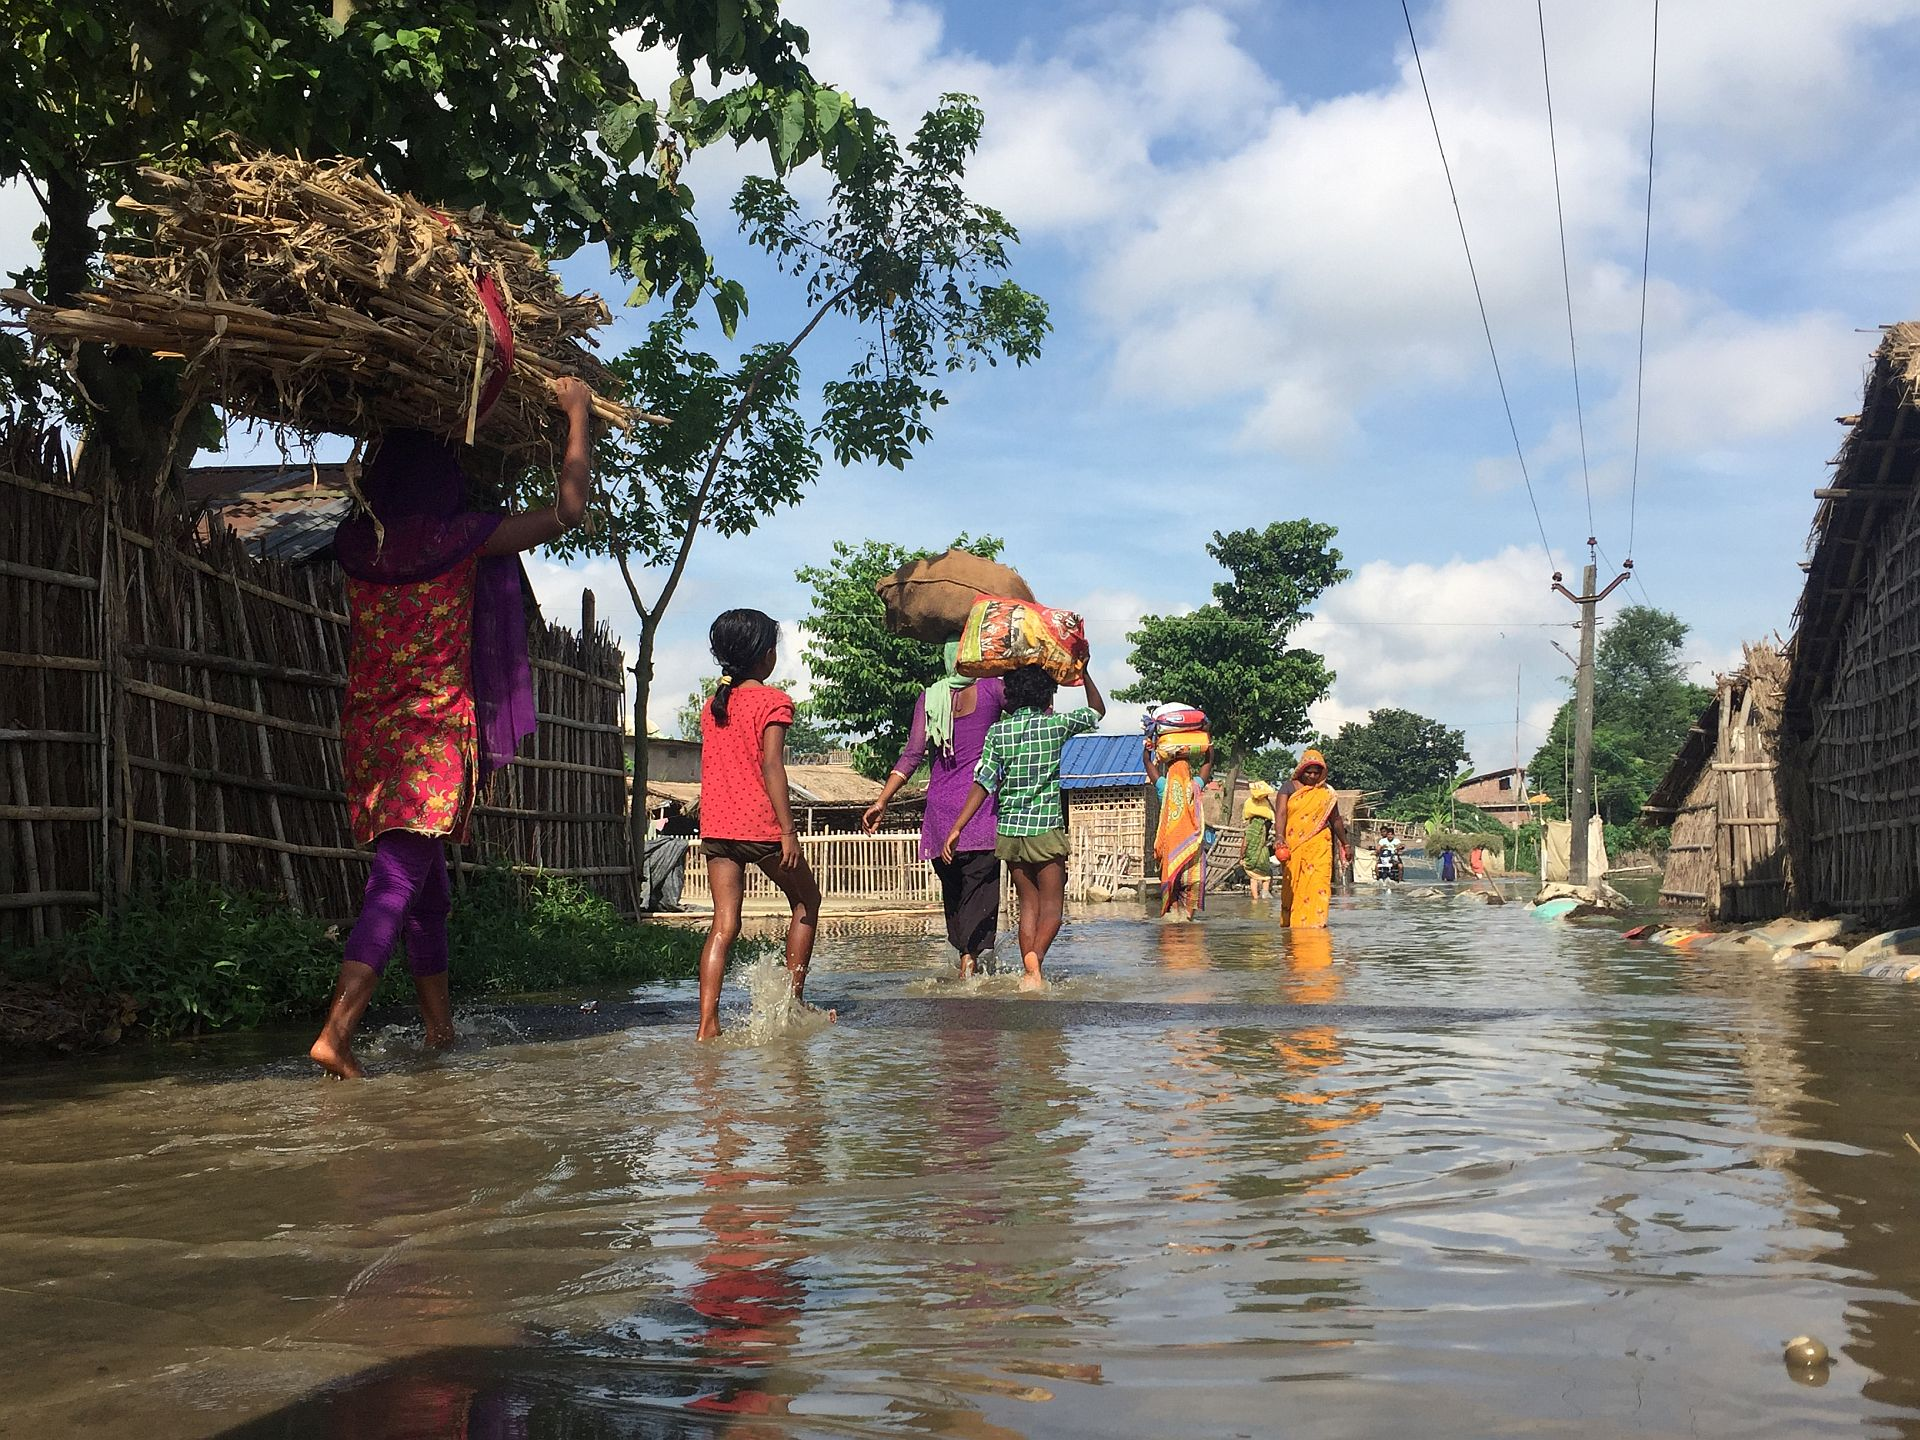 Villagers moving to safer areas due to floods in Bihar, India. Photo: Dr Dakshina Murthy / IWMI